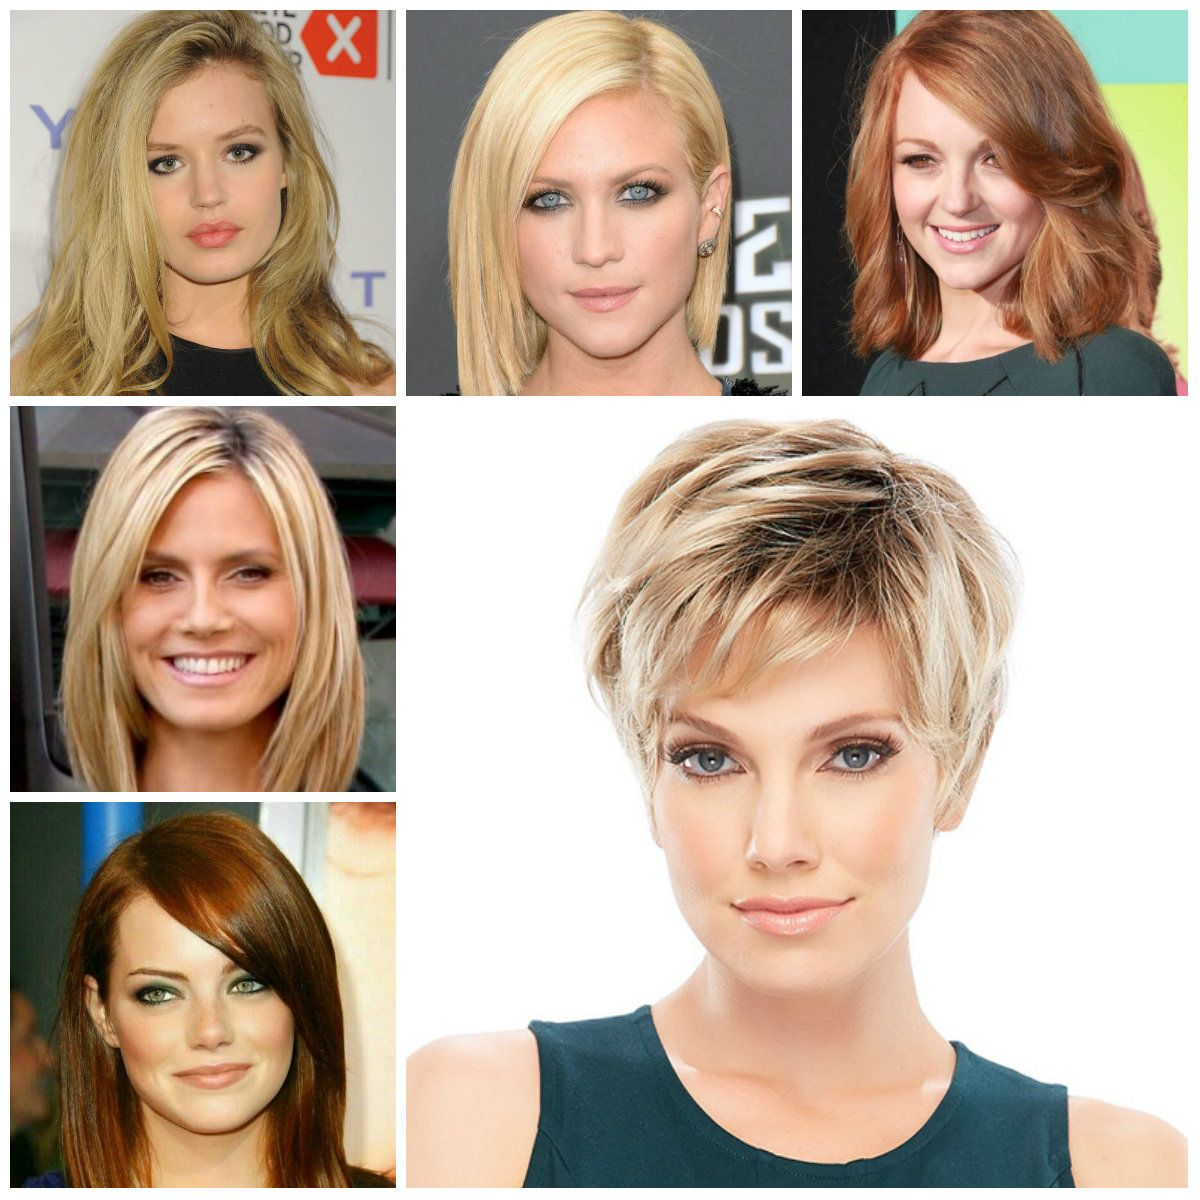 Easy hairstyles for round face shapes - 2016 Best Hairstyle Ideas For Round Faces Hairstyles 2016 New Haircuts And Hair Colors From